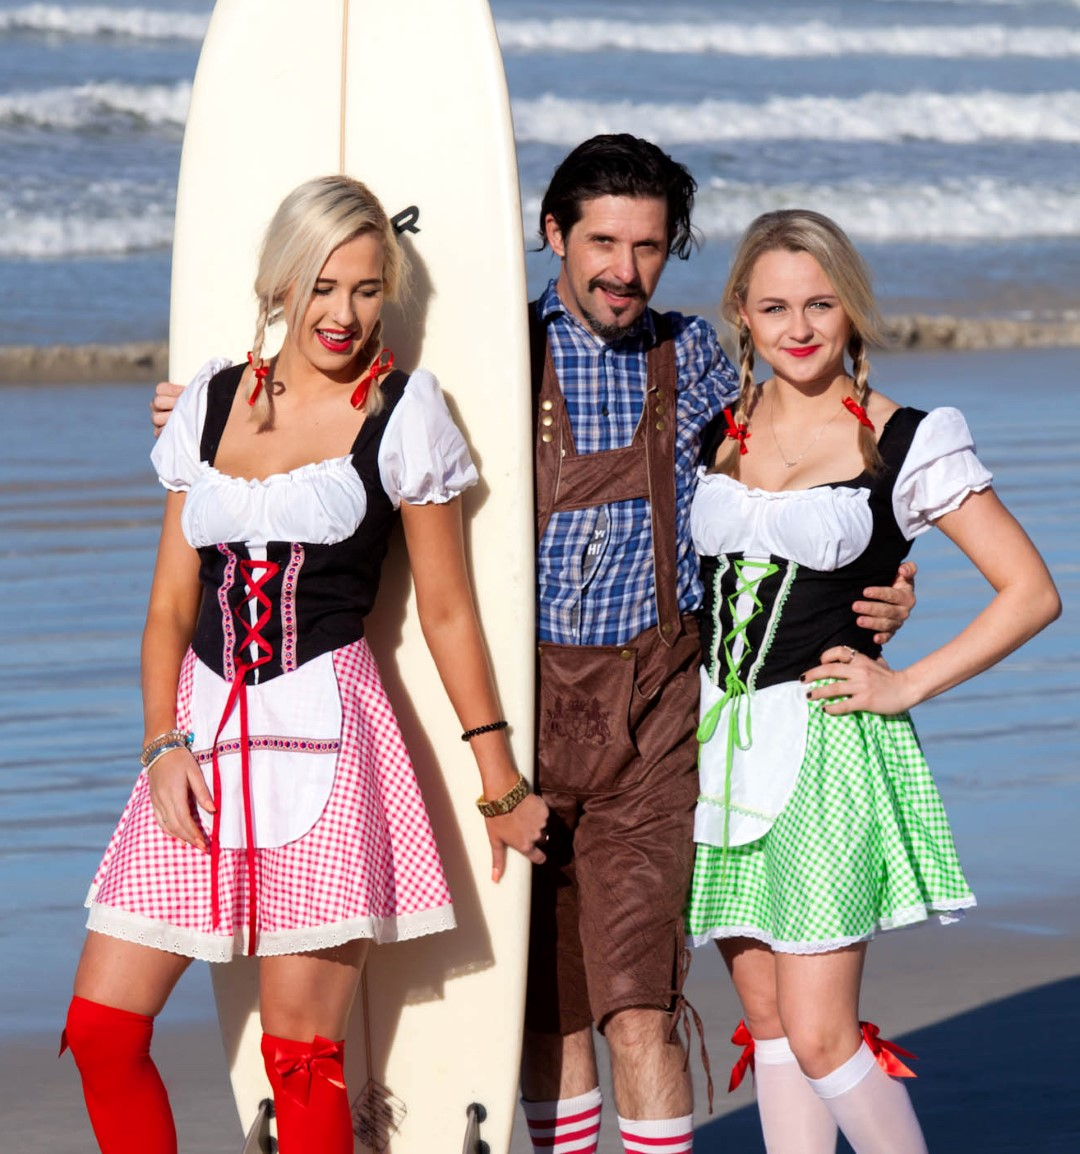 This weekend the TOPS at SPAR Bierfest comes to Sibaya Casino and Entertainment Kingdom.